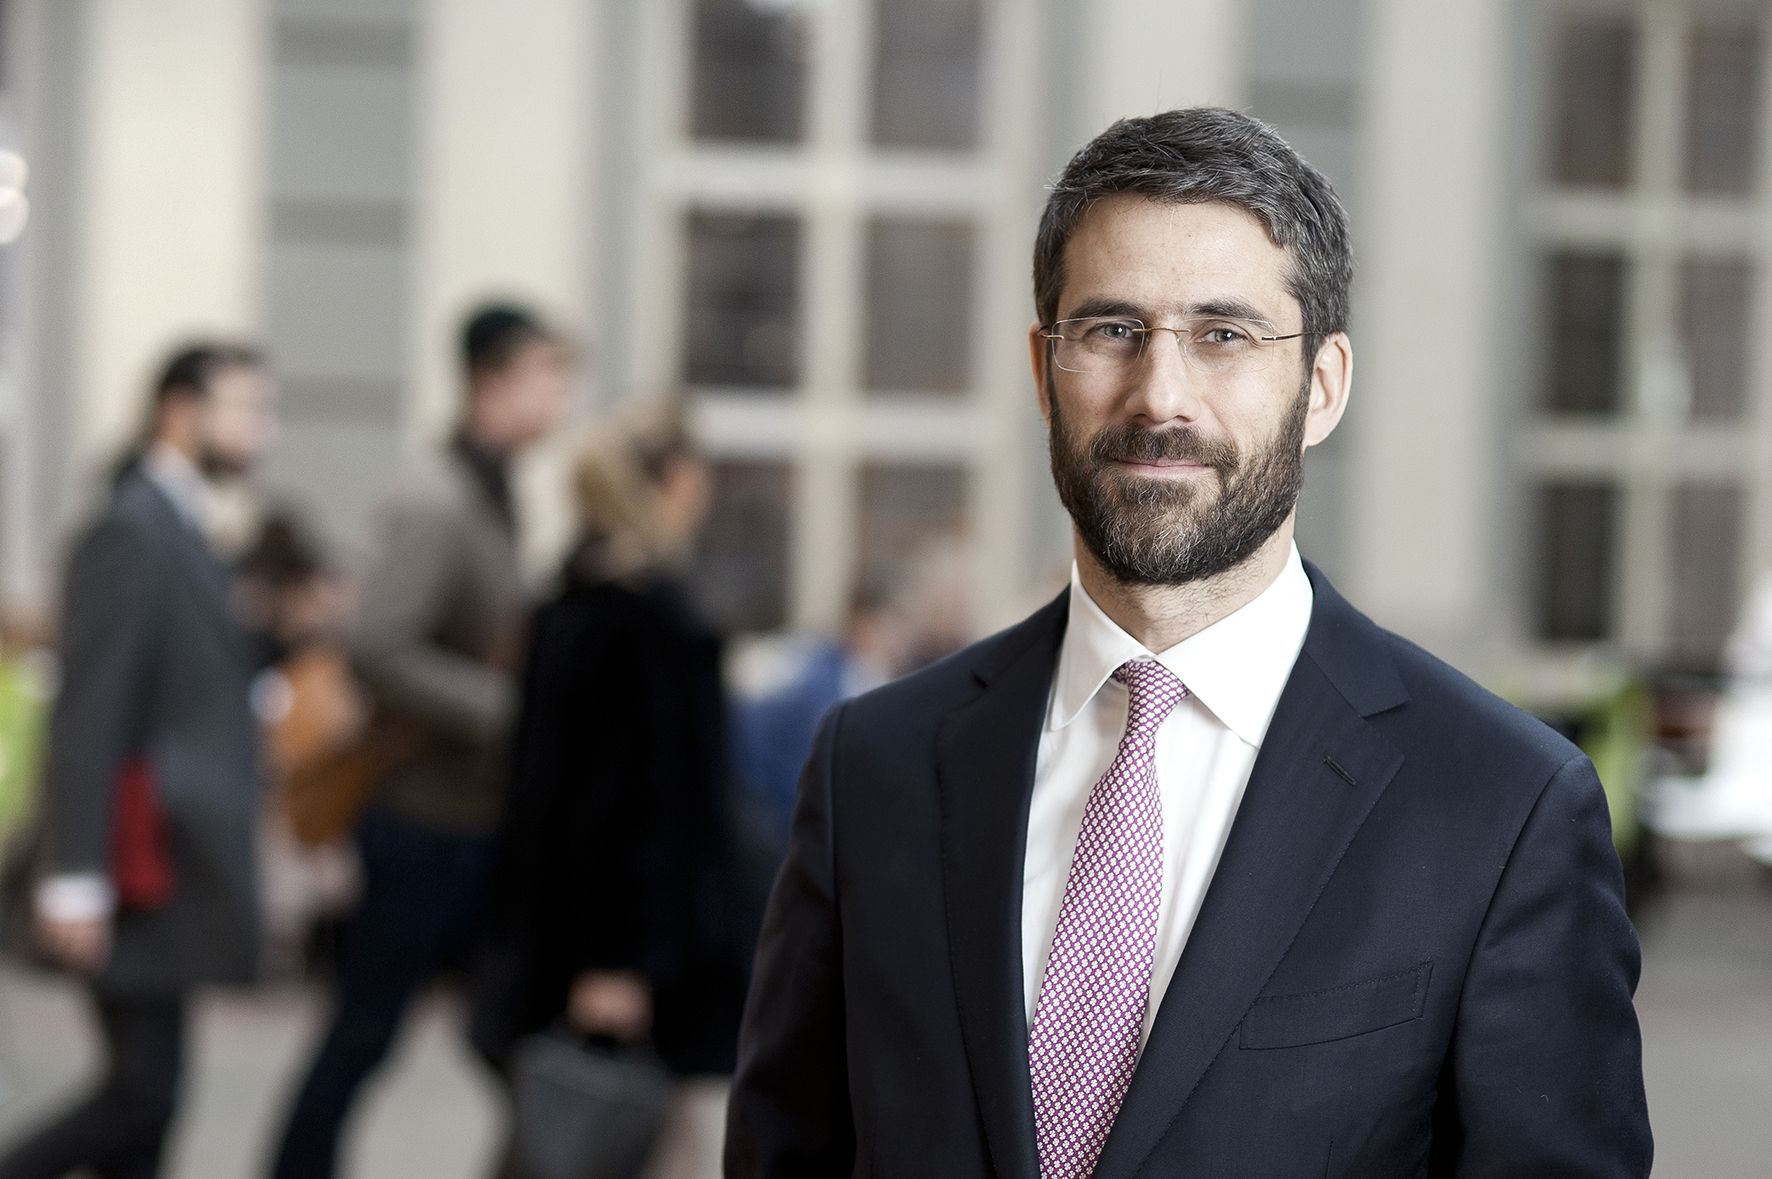 Bo Becker has been appointed to the Gösta Olson Chair in Financial